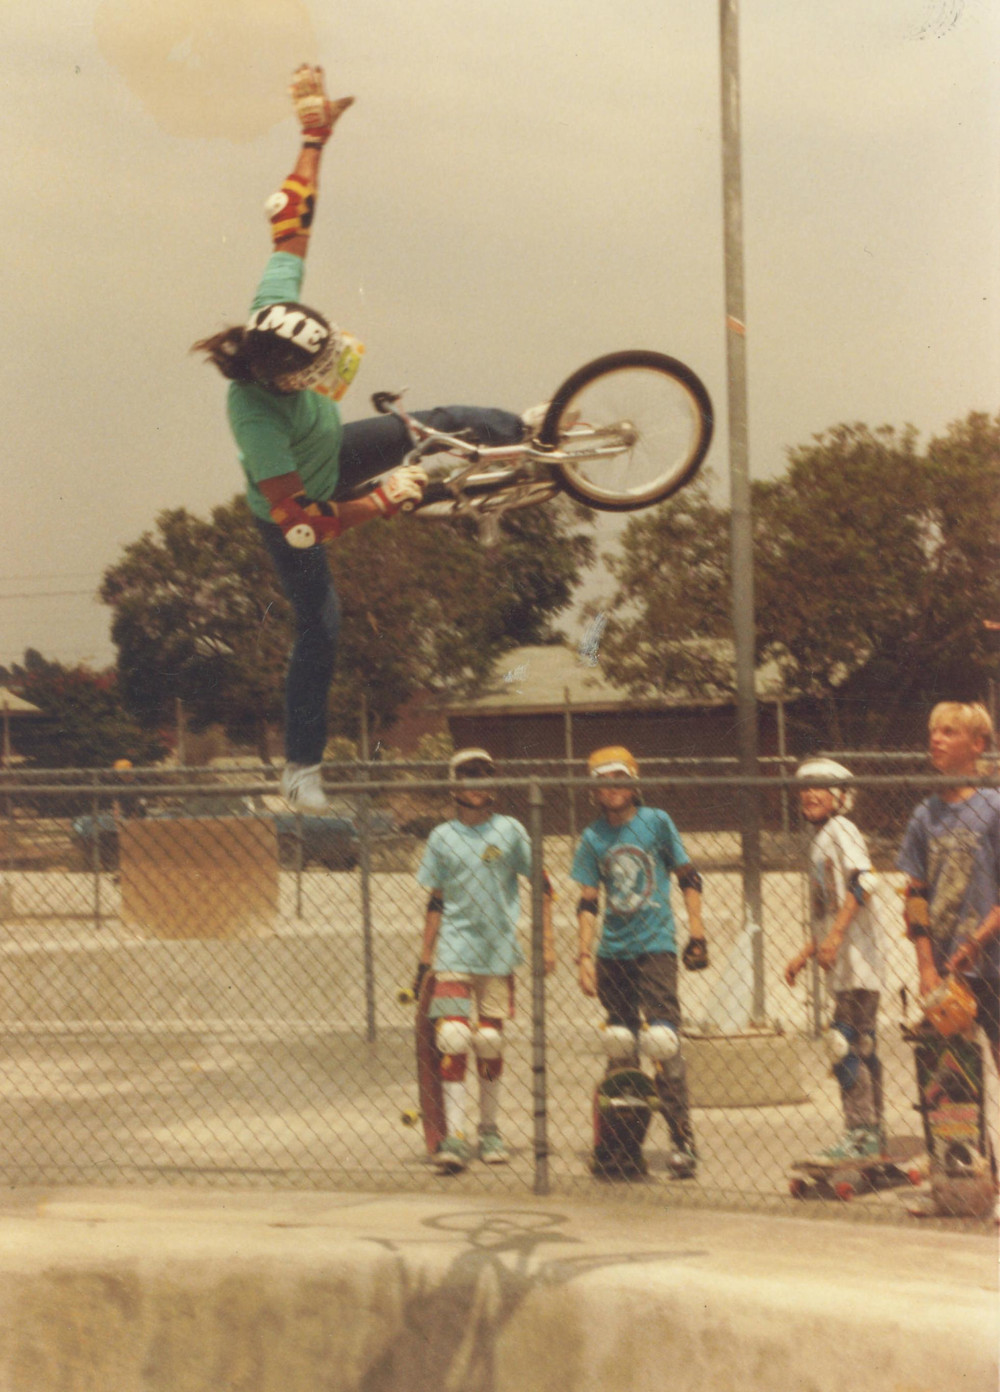 Eddie Fiola rode Skatopia Skatepark with Bob Morales, started ASPA Amateur Skatepark Association King of the series in Lakewood